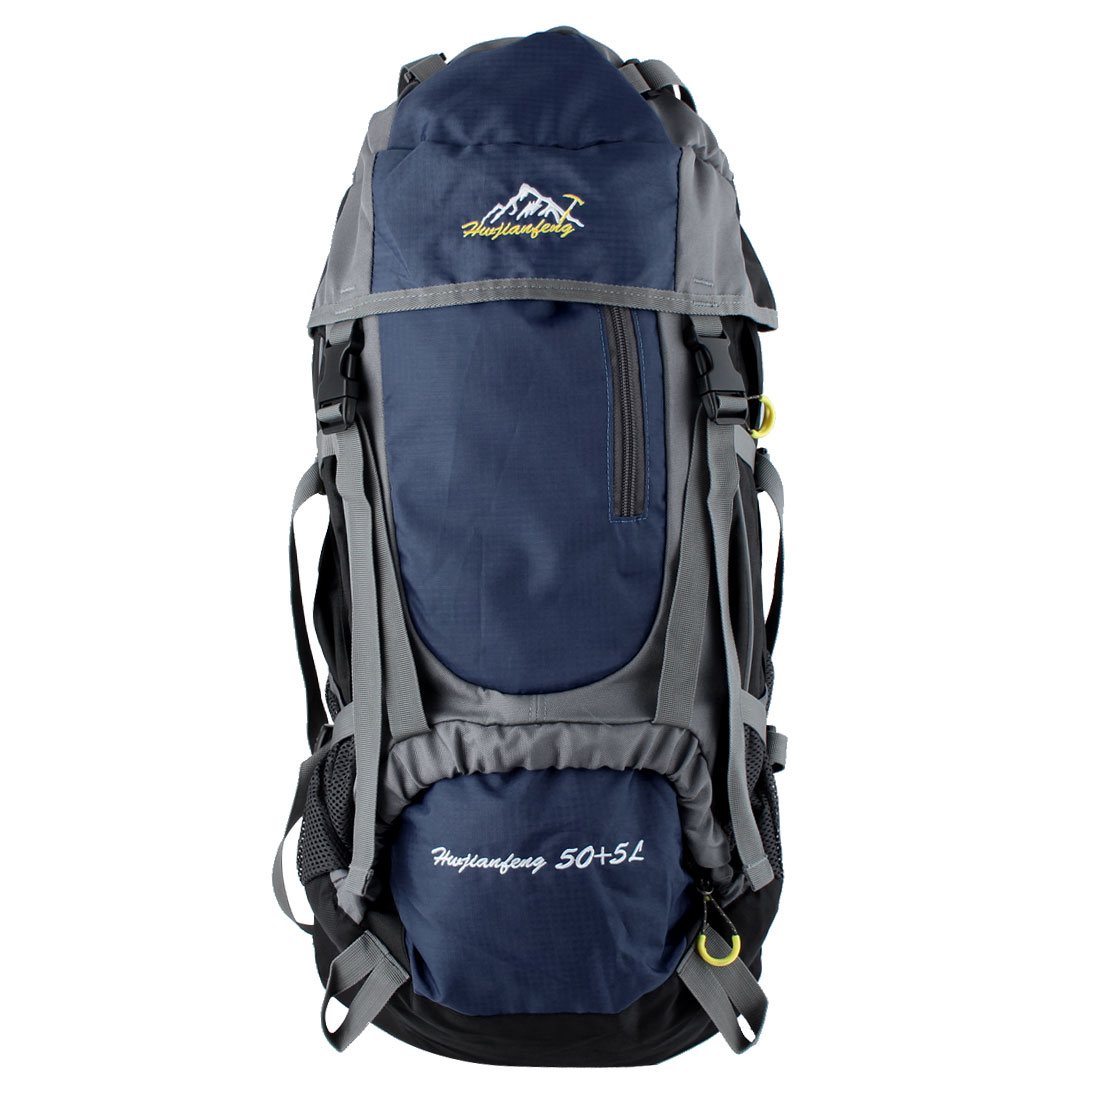 HWJIANFENG Authorized Outdoor Travel Trekking Riding Climbing Mountaineering Pack Water Resistant Sport Bag Hiking Backpack Daypack Dark Blue 55L